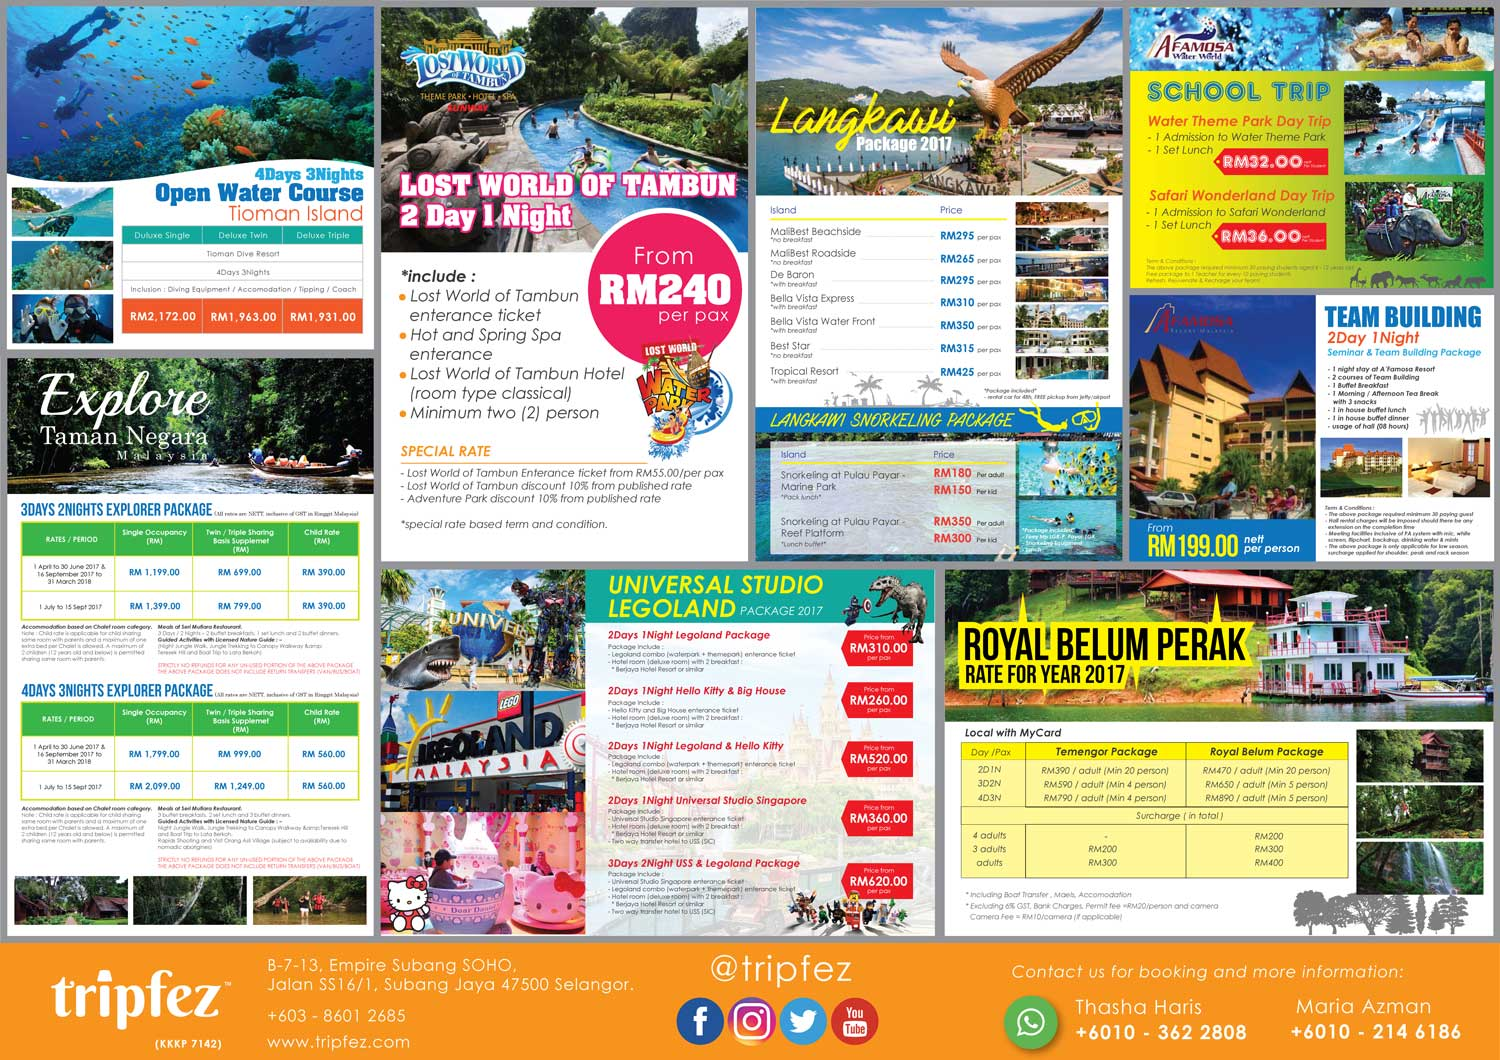 Booking halal tickets for best places to visit in Malaysia? Try Tripfez for any local Muslim holiday destinations.